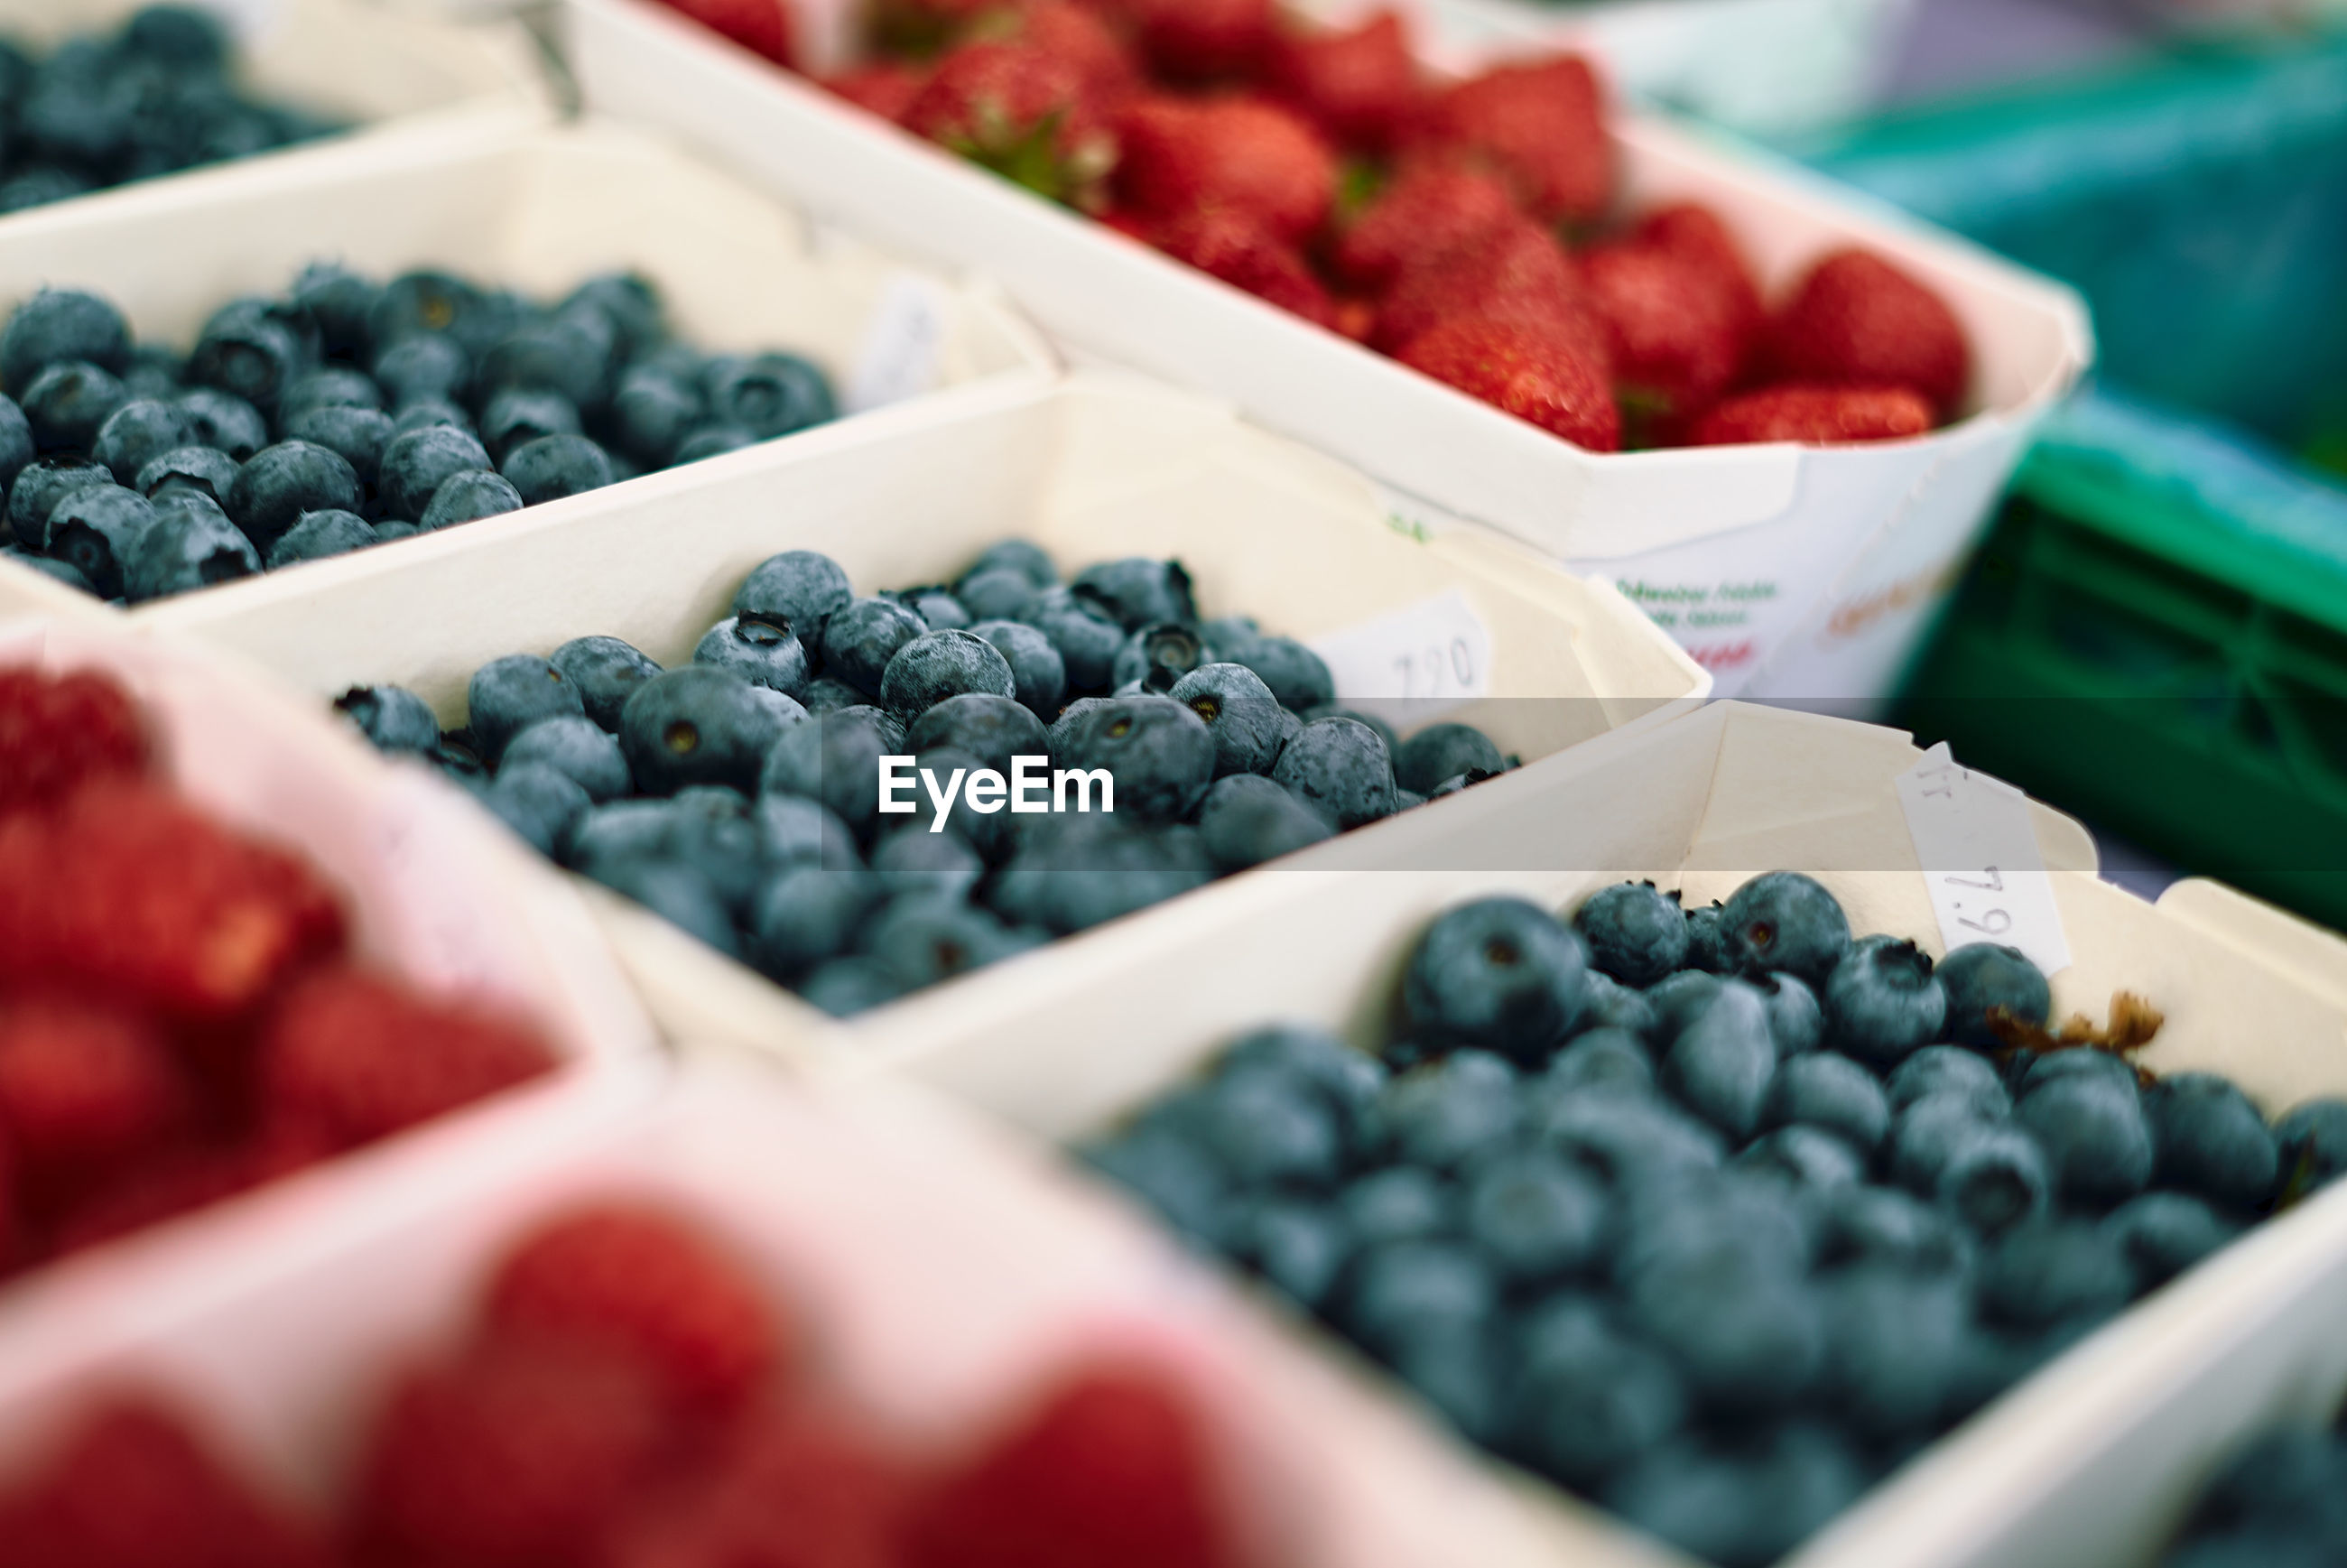 Close-up of berry fruits in container at market stall